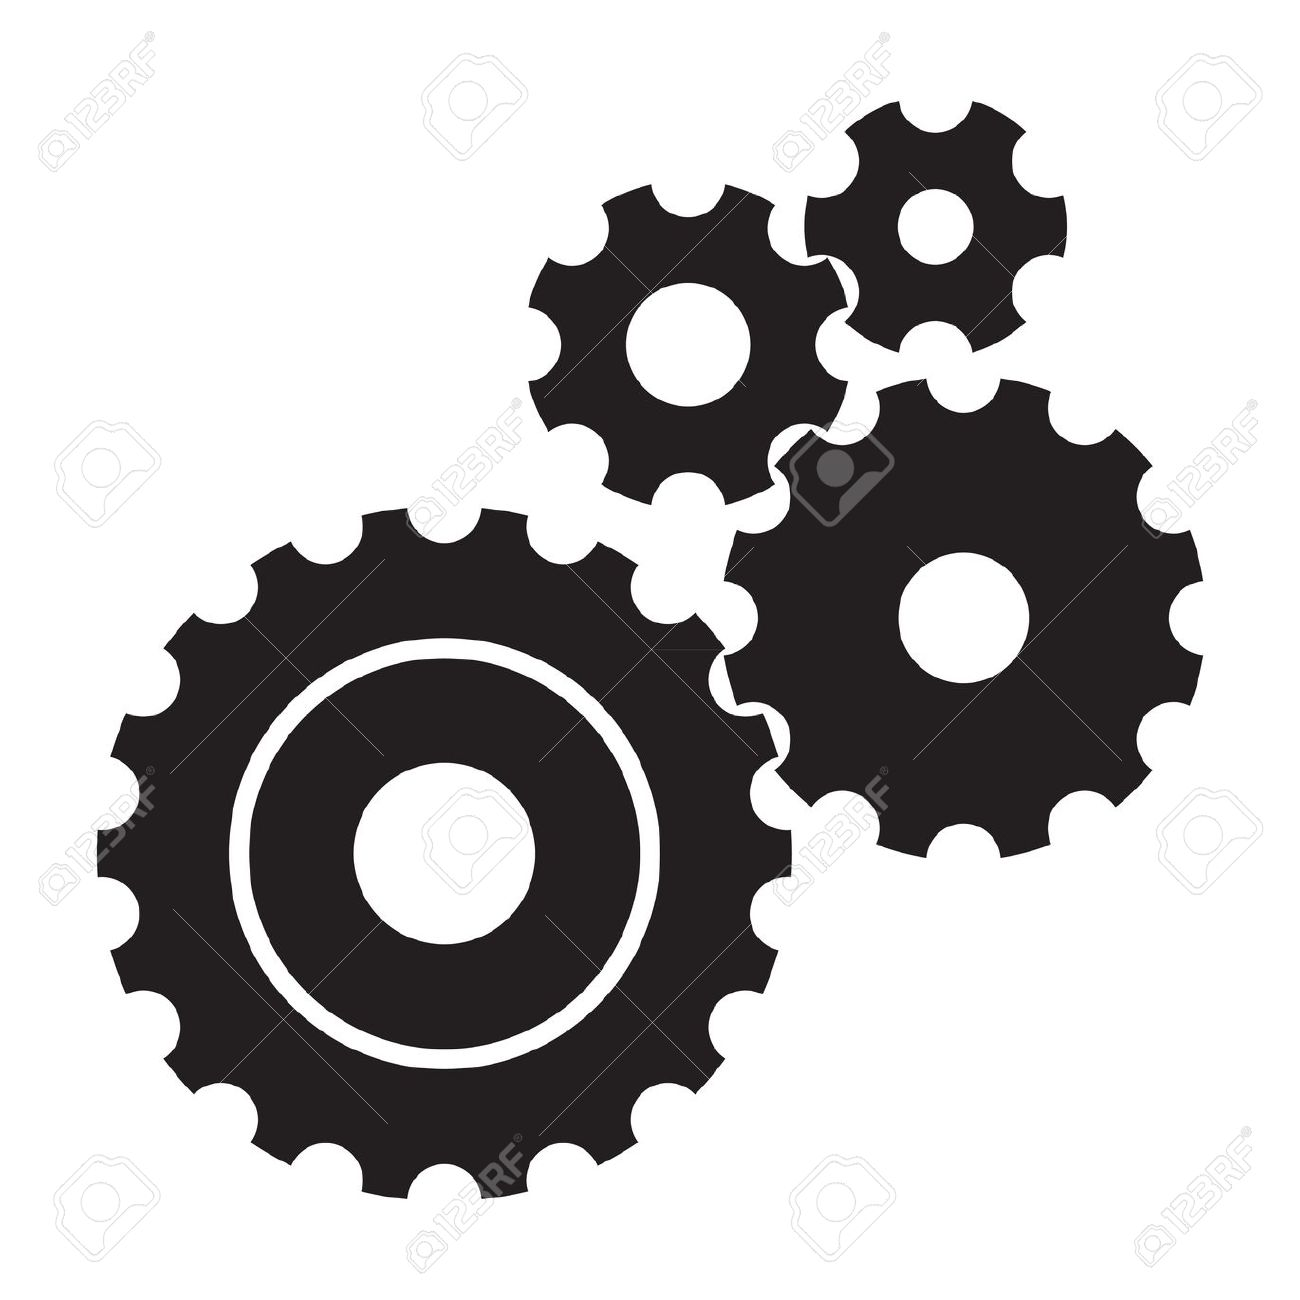 Gears clipart linked. Mechanical cliparts free download